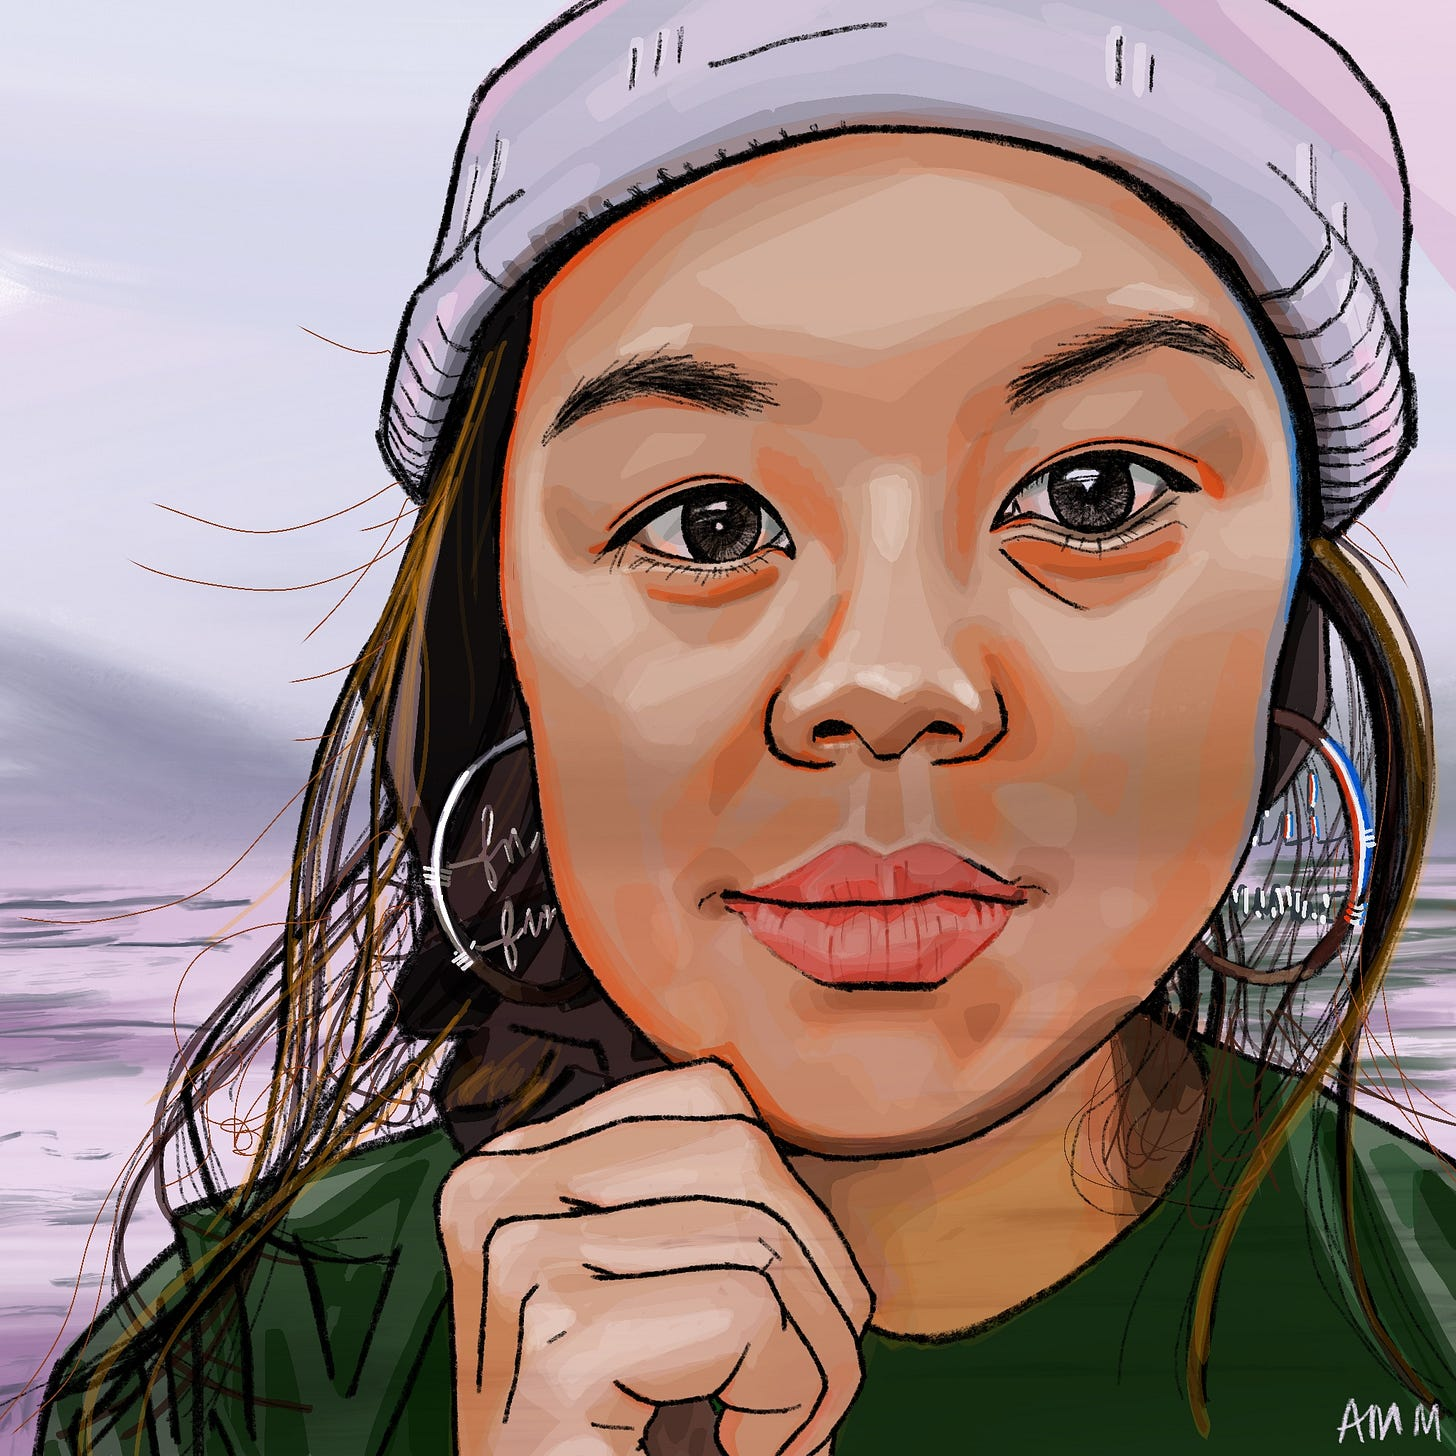 Illustration of Erica in a grey toque and hoop earrings, she faces the camera with the water behind her